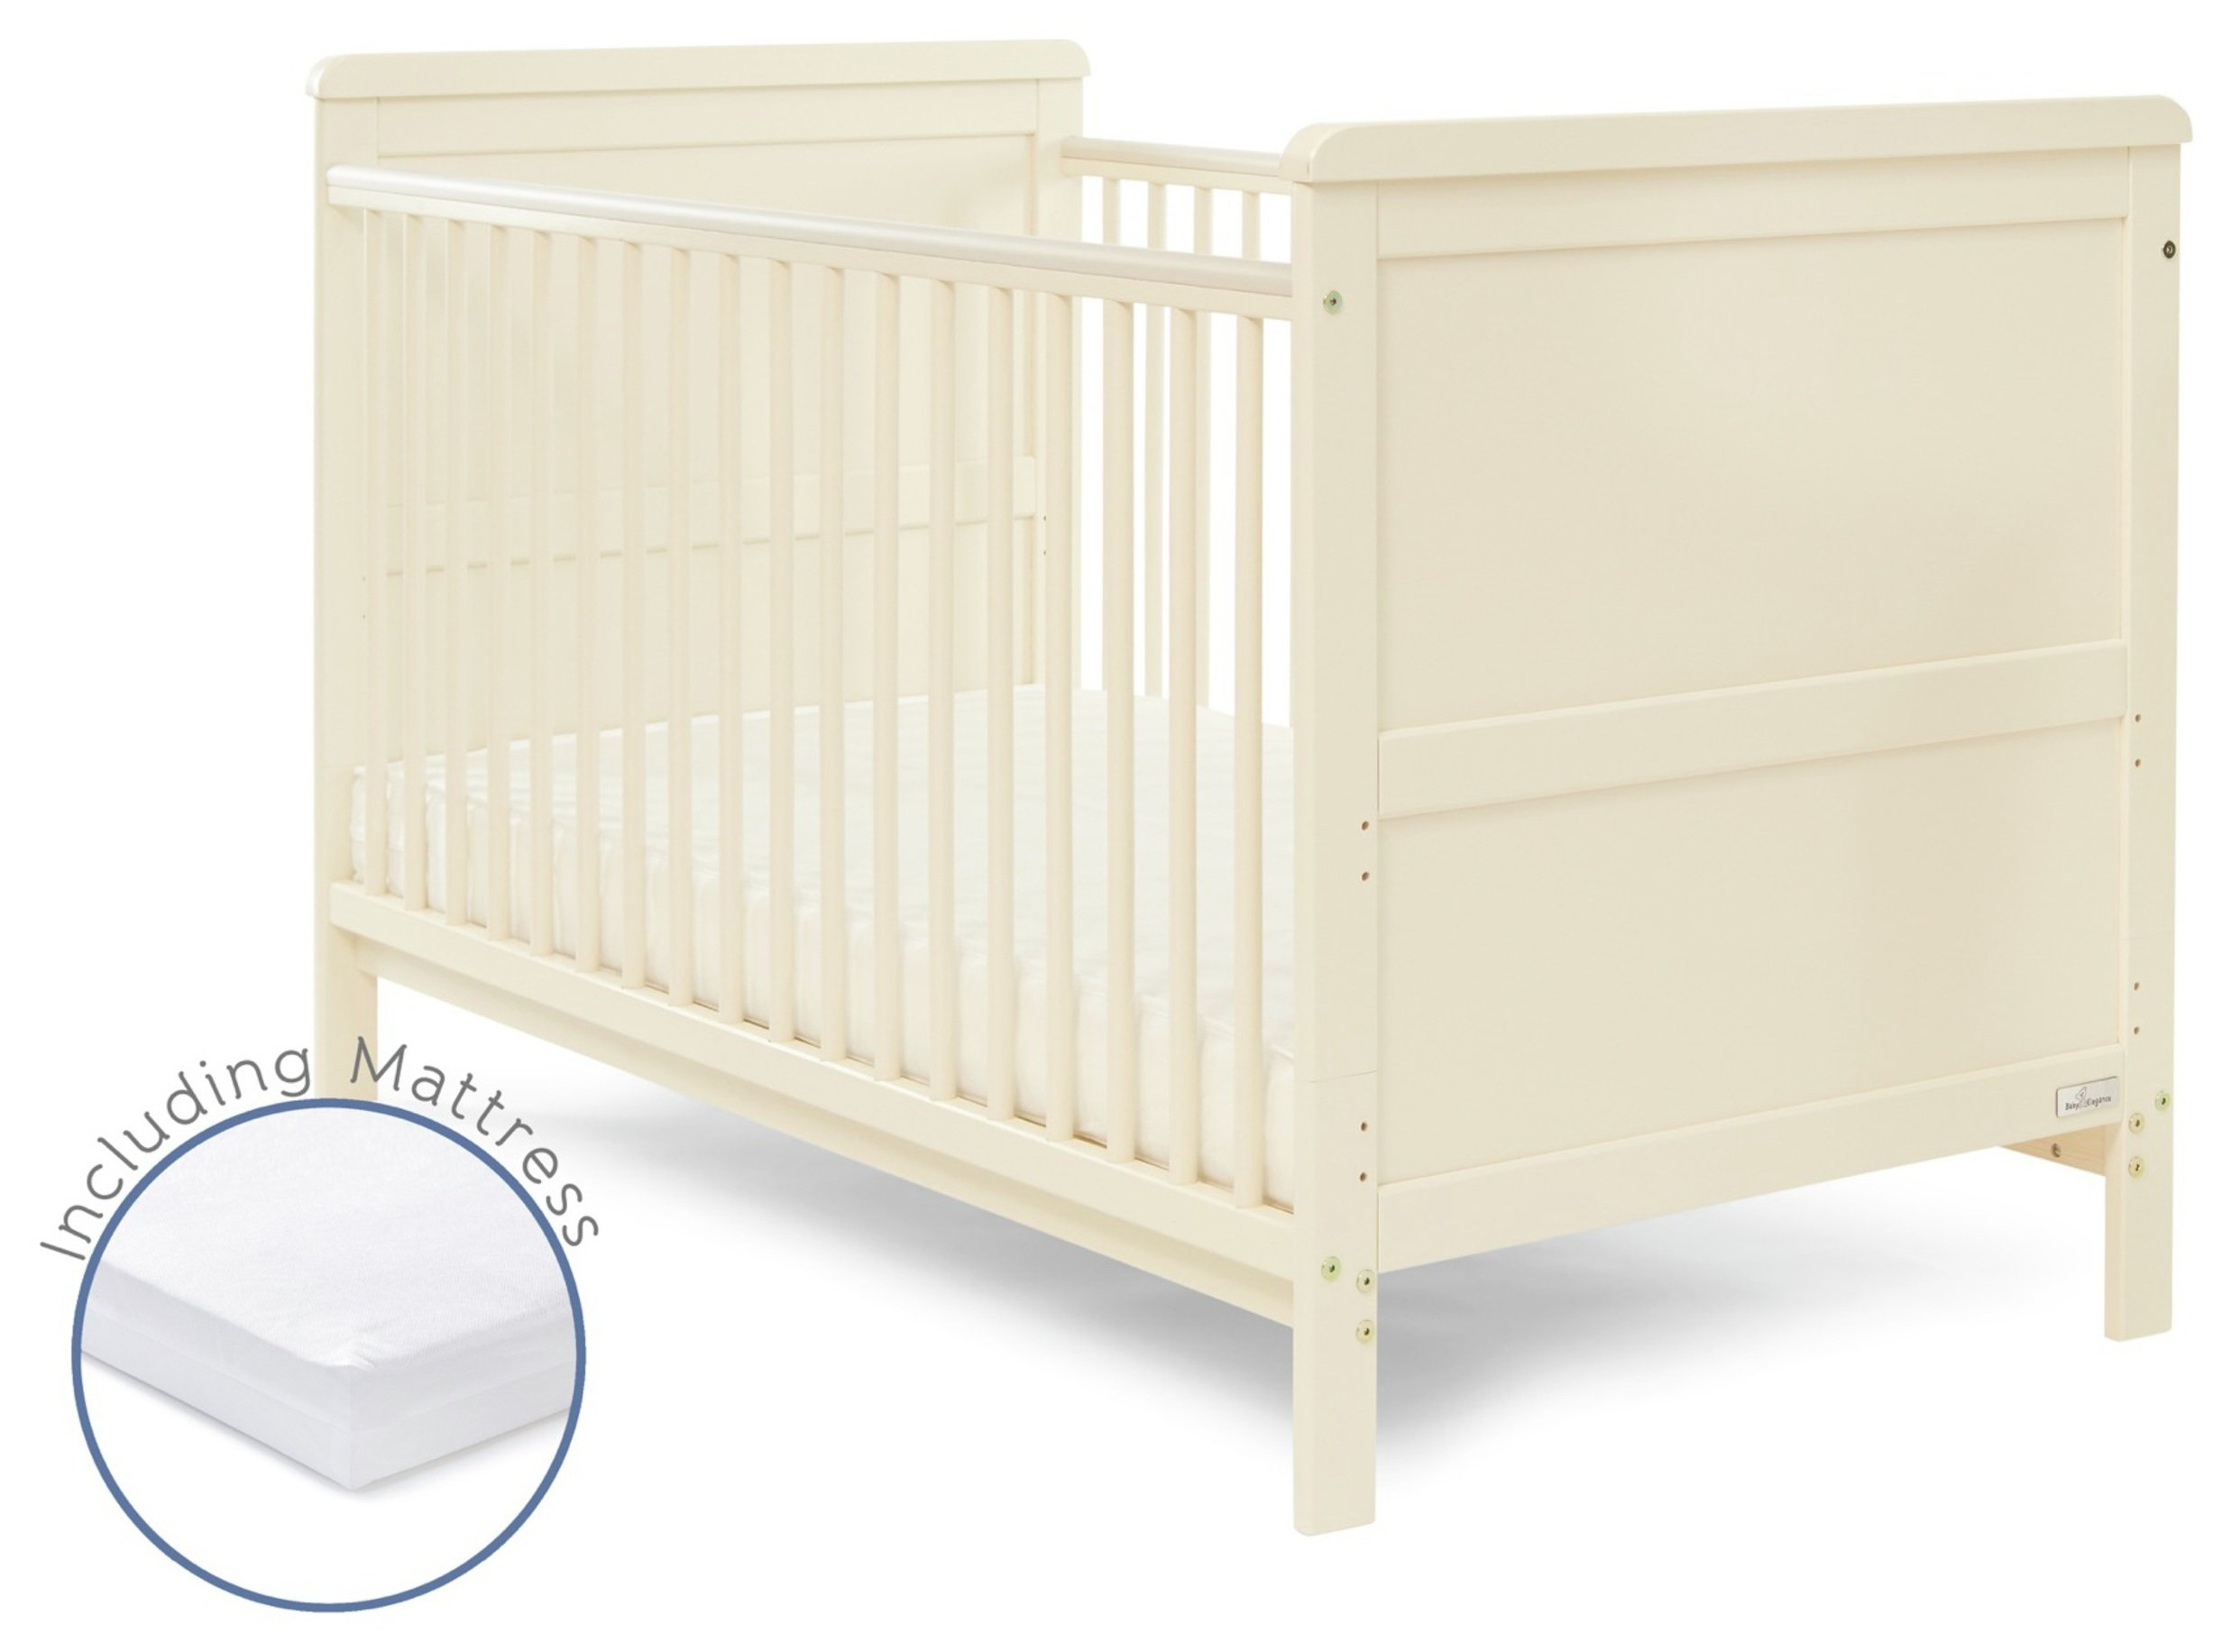 Image of Baby Elegance Alex Cot Bed with Mattress - Cream.